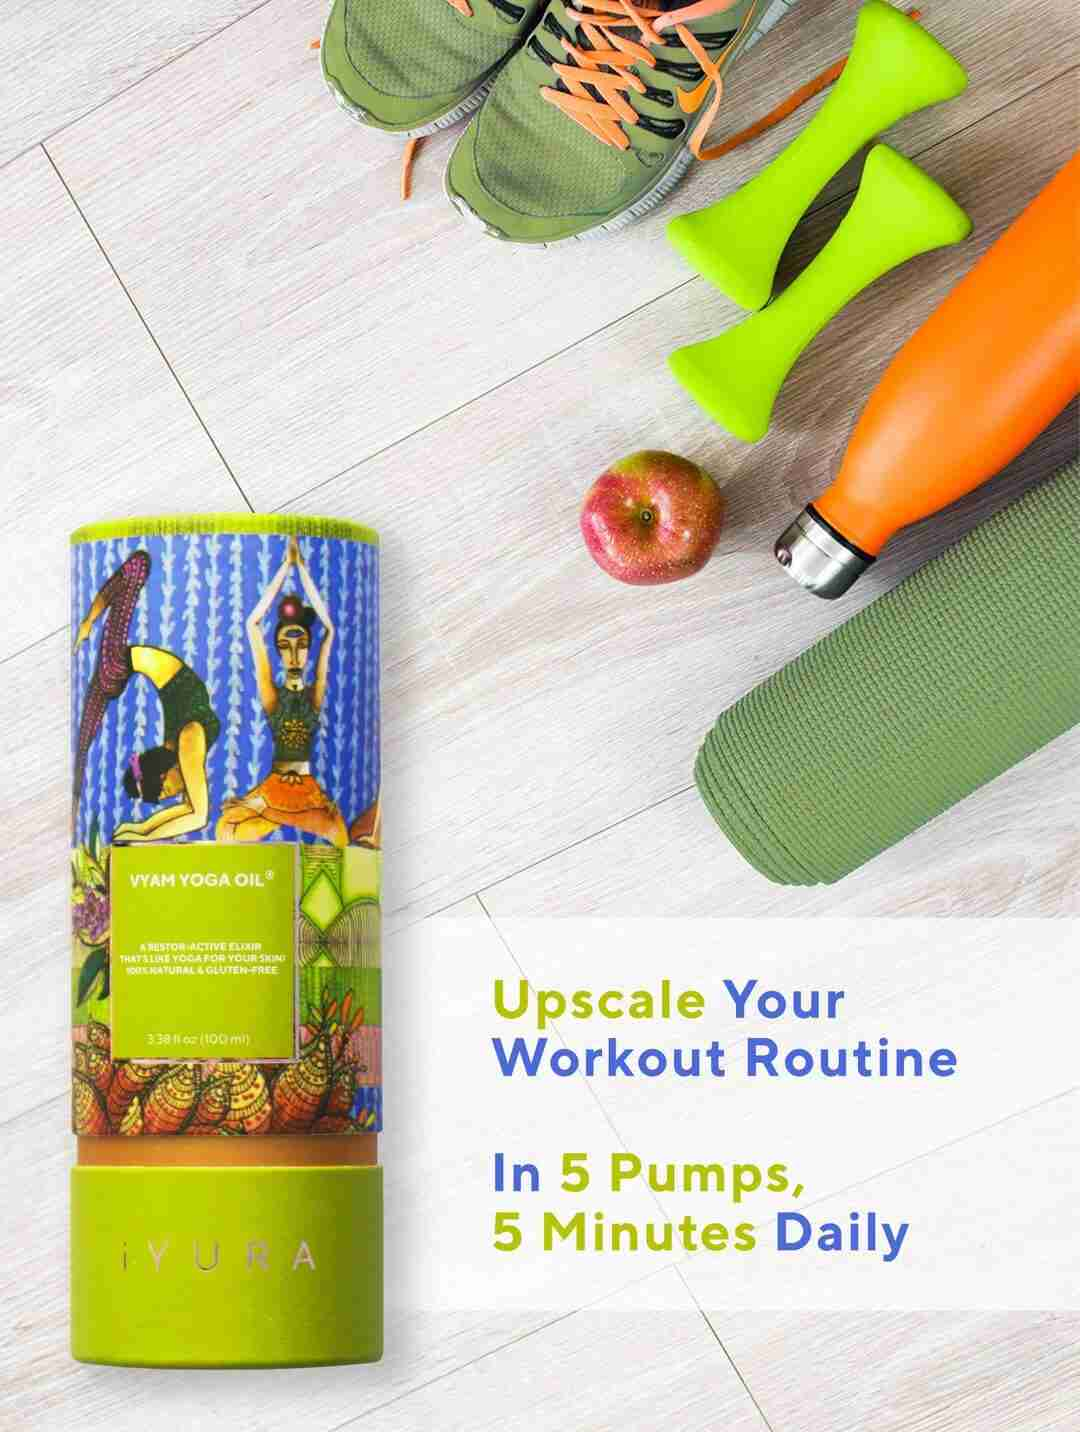 Upscale your workouts with Vyam Yoga Oil